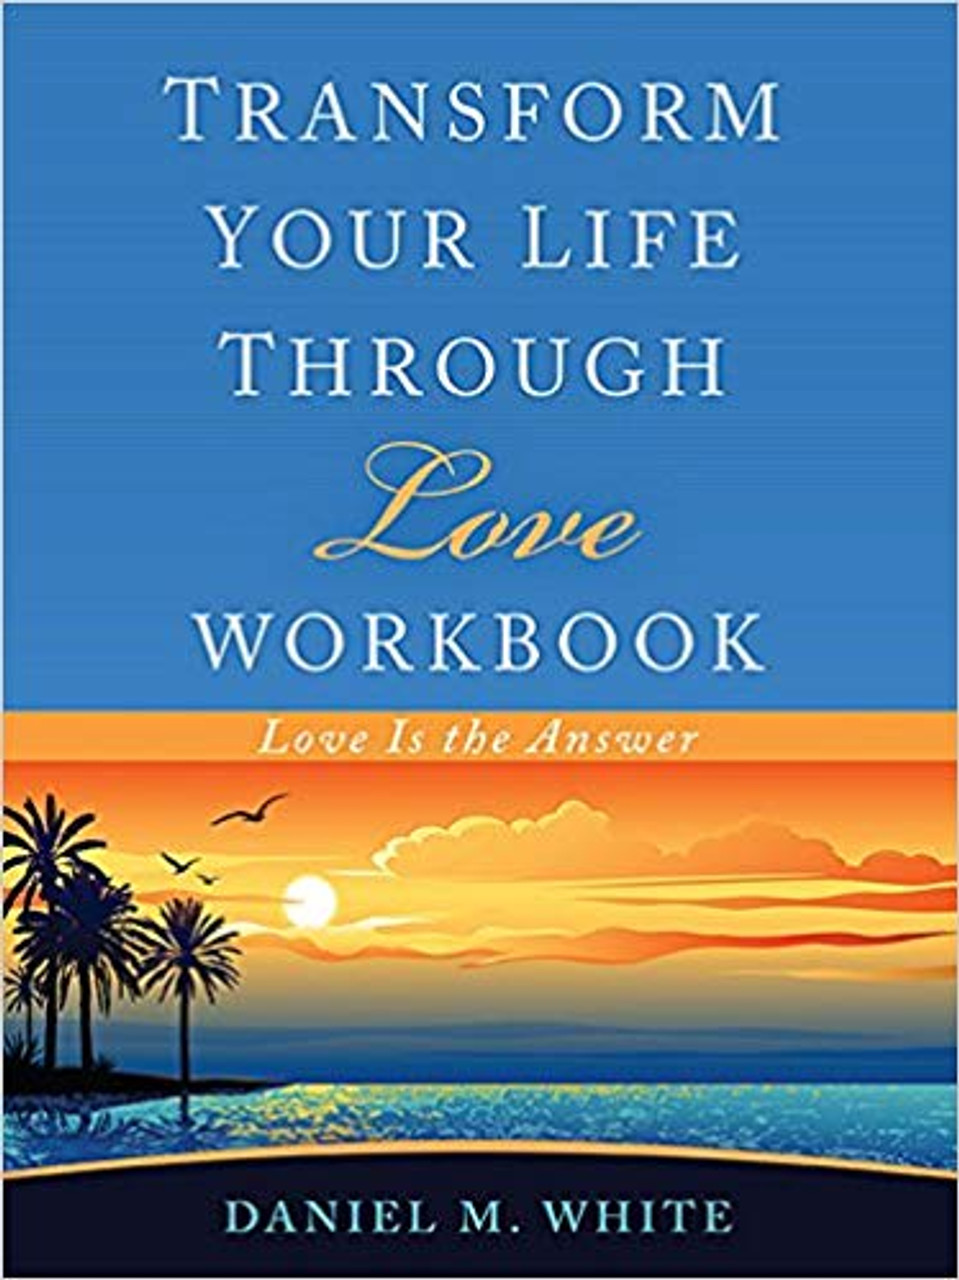 Transform Your Life Through Love Workbook